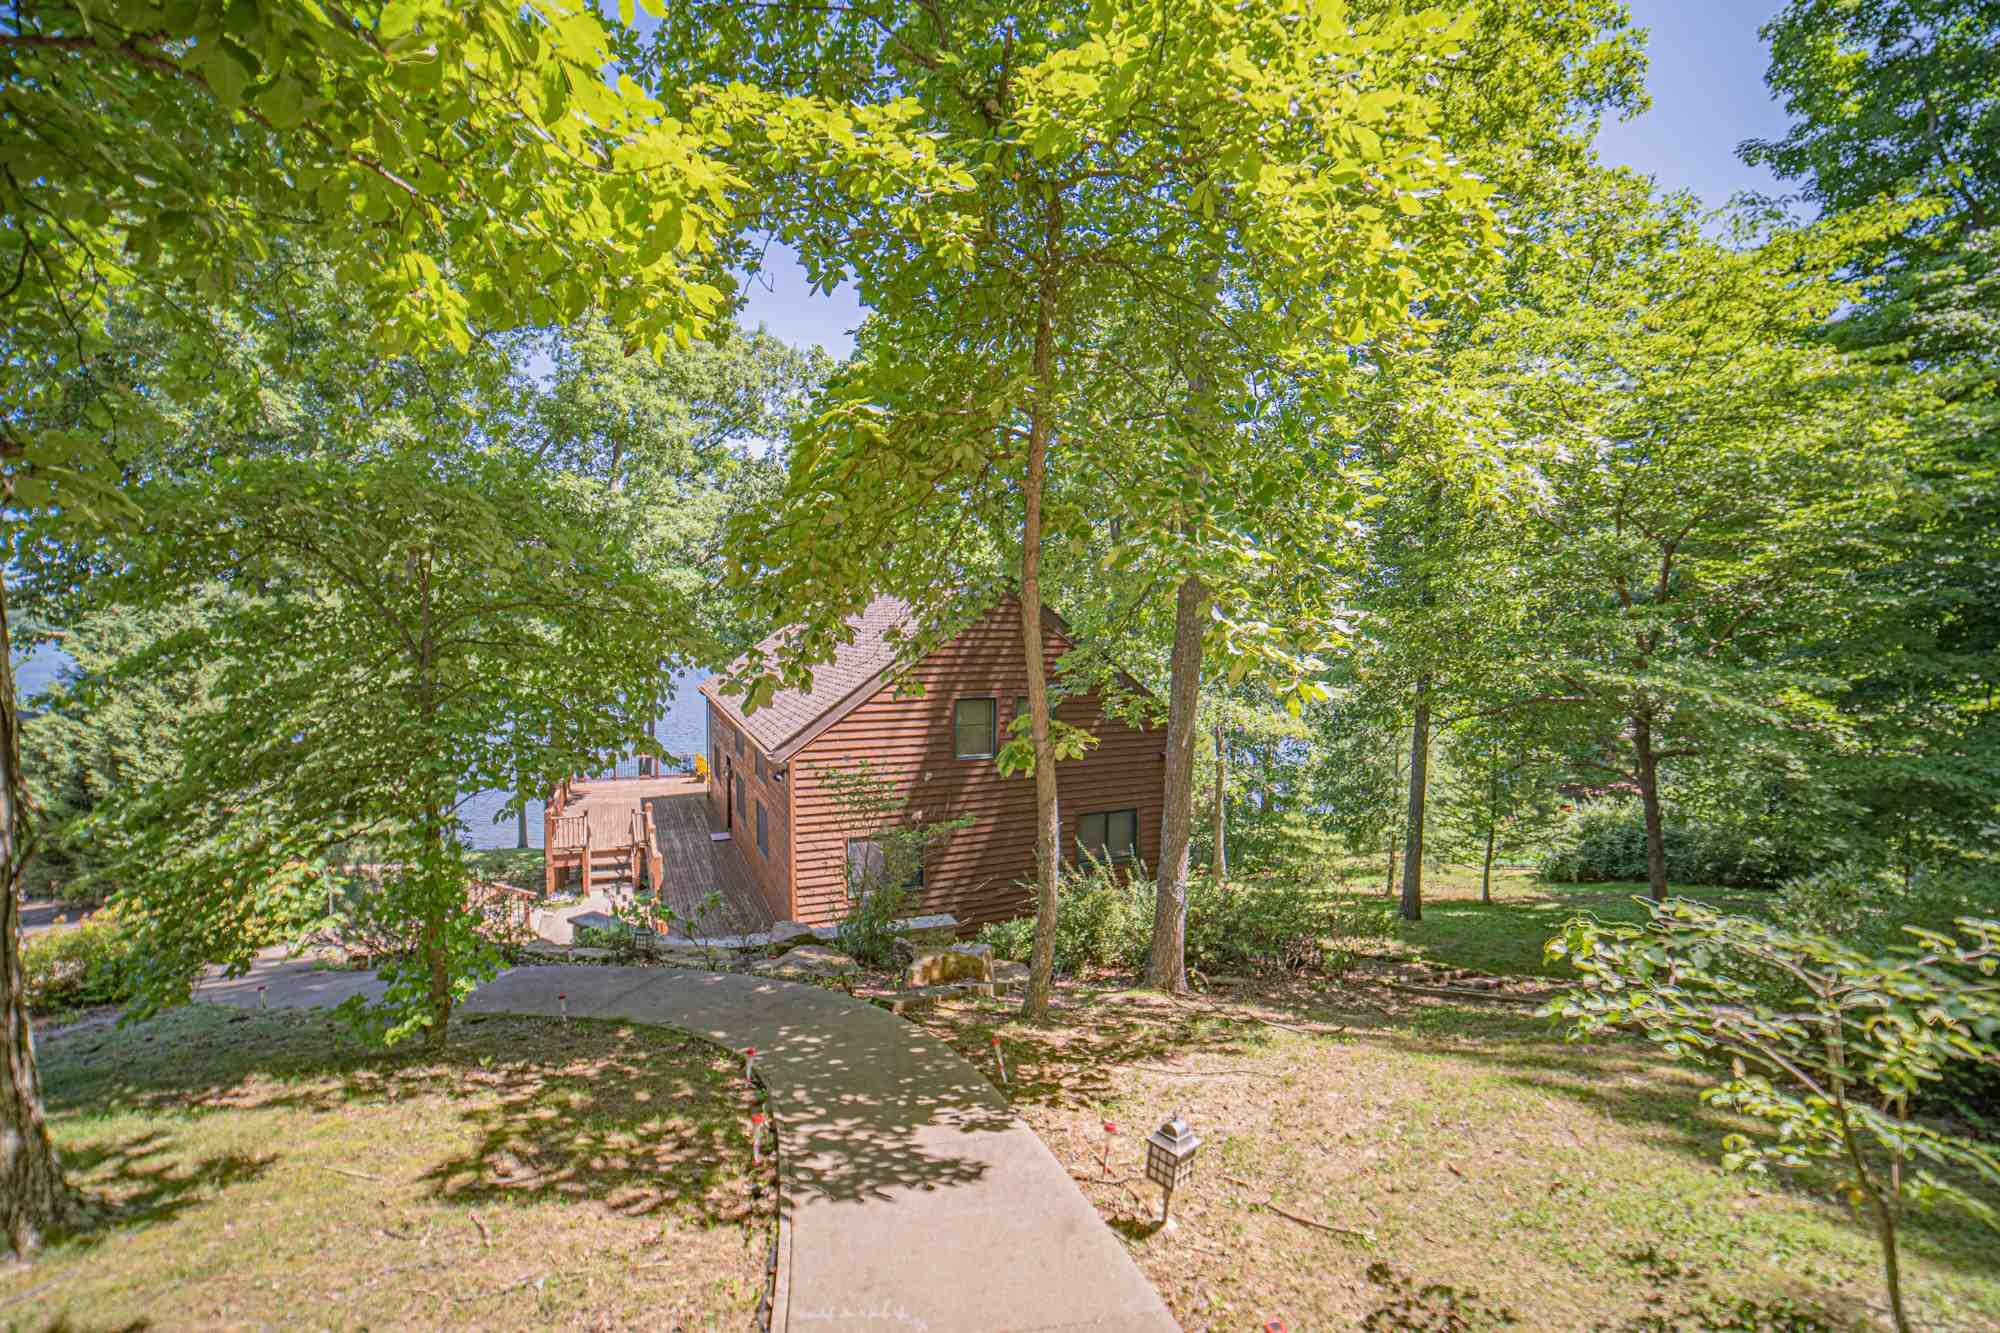 Christmas Lake Front Living at its best!!! This 3 bedroom, 3 1/2 bath Yankee Barn home is nestled in the woods over looking Christmas Lake!!! This home continues to have lots of the original charm, along with many updates! Walk into the spacious great room with beautiful cathedral ceiling, wall of windows offering gorgeous views of the water, and floor to ceiling fireplace. Open concept living to the great room and kitchen area. Granite counter tops and stainless steel appliances.The main level also offers a dining room area, master bedroom with ensuite and another bath on this level. The upper level consists of a loft area, two bedrooms and a bath. Lots of natural lighting through out this beautiful home. Hardwood flooring in the home as well.Spacious Trex deck and screened in porch area. Imagine relaxing and or entertaining on this wonderful area over looking the beautiful waters of Christmas Lake! Full walk out basement with tremendous storage and a bathroom. Private boat dock. What are you waiting for?.... Paradise awaits!!!